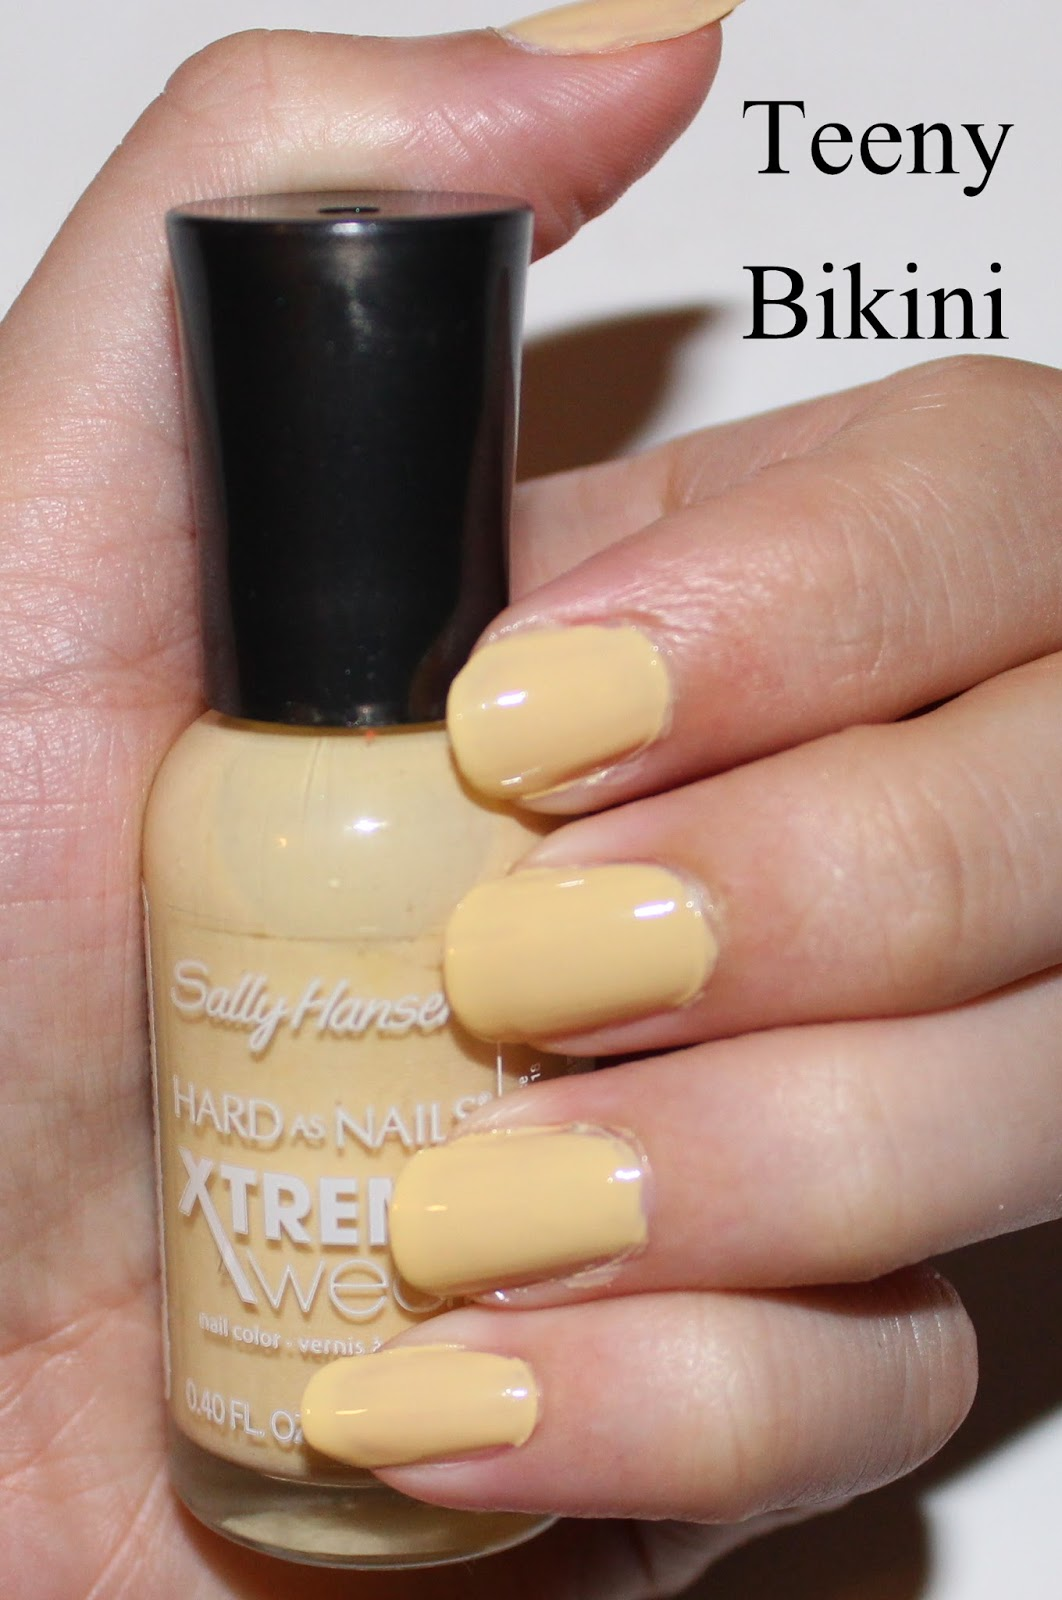 Sally Hansen Xtreme Wear in Teeny Bikini Swatch